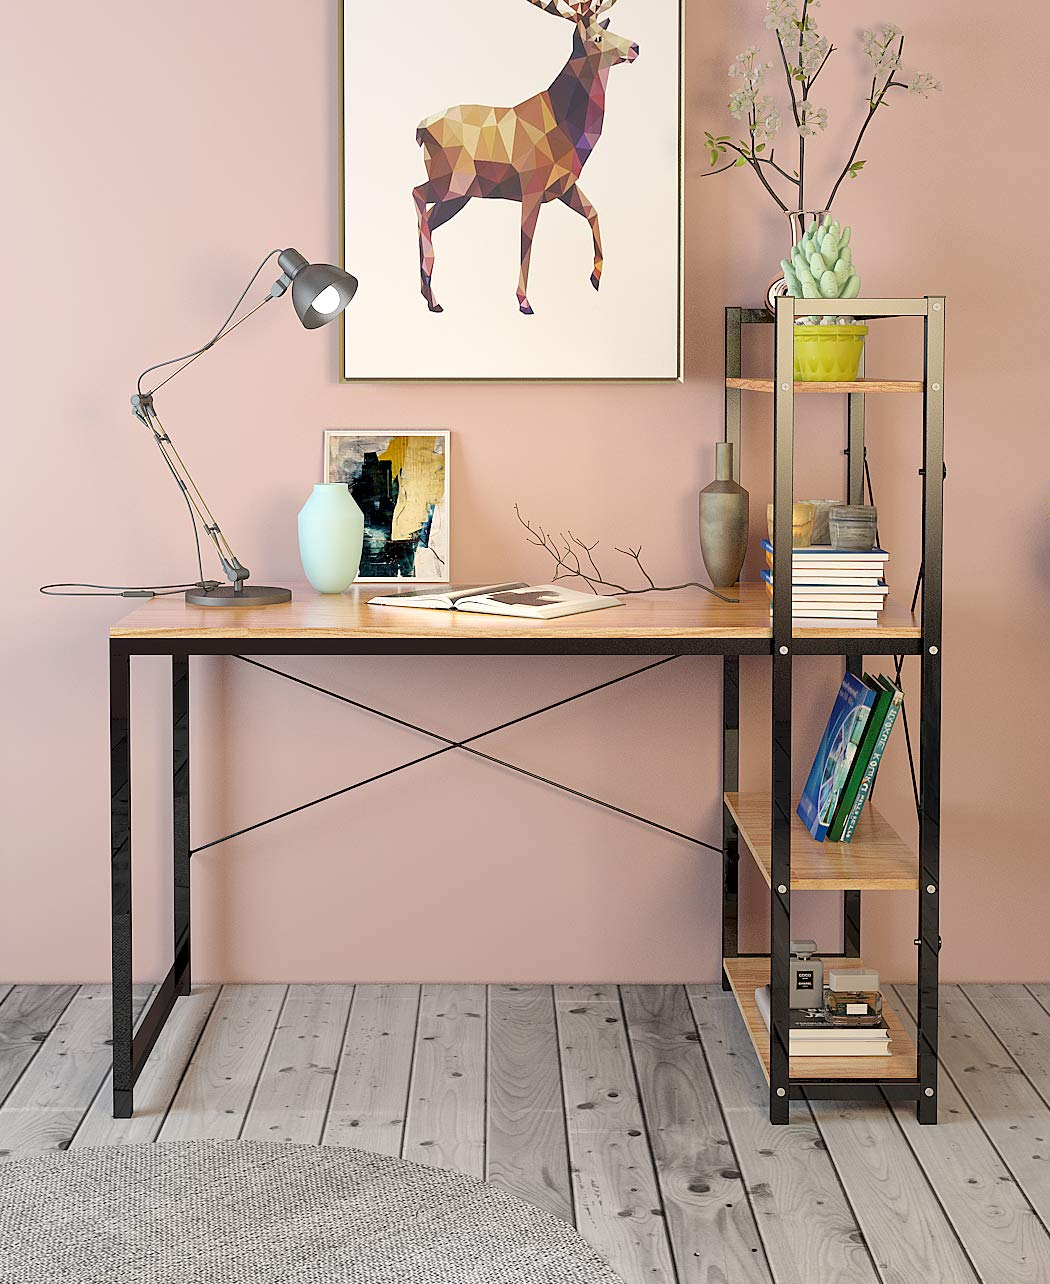 Computer Desk,Modern Style Office Workstation,Home Wood & Metal - ★L-SHAPED CORNER DESIGN - Wrap-around style provides plenty of surface space for home and office work-related or gaming activities. It creates a look that is both attractive and simple. This desk applies to any room and is a great compliment to any home office.The L-shaped design also offered storage space under the corner desk. ★STRONG AND DURABLE - Steel frame construction is sturdy and durable, which provides a strong support.The computer desk is built with a stable and powder-coated steel frame and long-lasting MDF material in a wood . ★HIGH-QUALITY MATERIAL - The home office desks is made of P2 eco-friendly class particle board and thicker steel. The thicker steel desk legs will decrease shake, which makes the desk more stable and secure. The surface of this desk is special, it is lightly textured so it can act as a smooth mouse pad perfectly. At the same time it prevents things for sliding around or falling off your desk easily. - writing-desks, living-room-furniture, living-room - 71IpRFOFO1L -